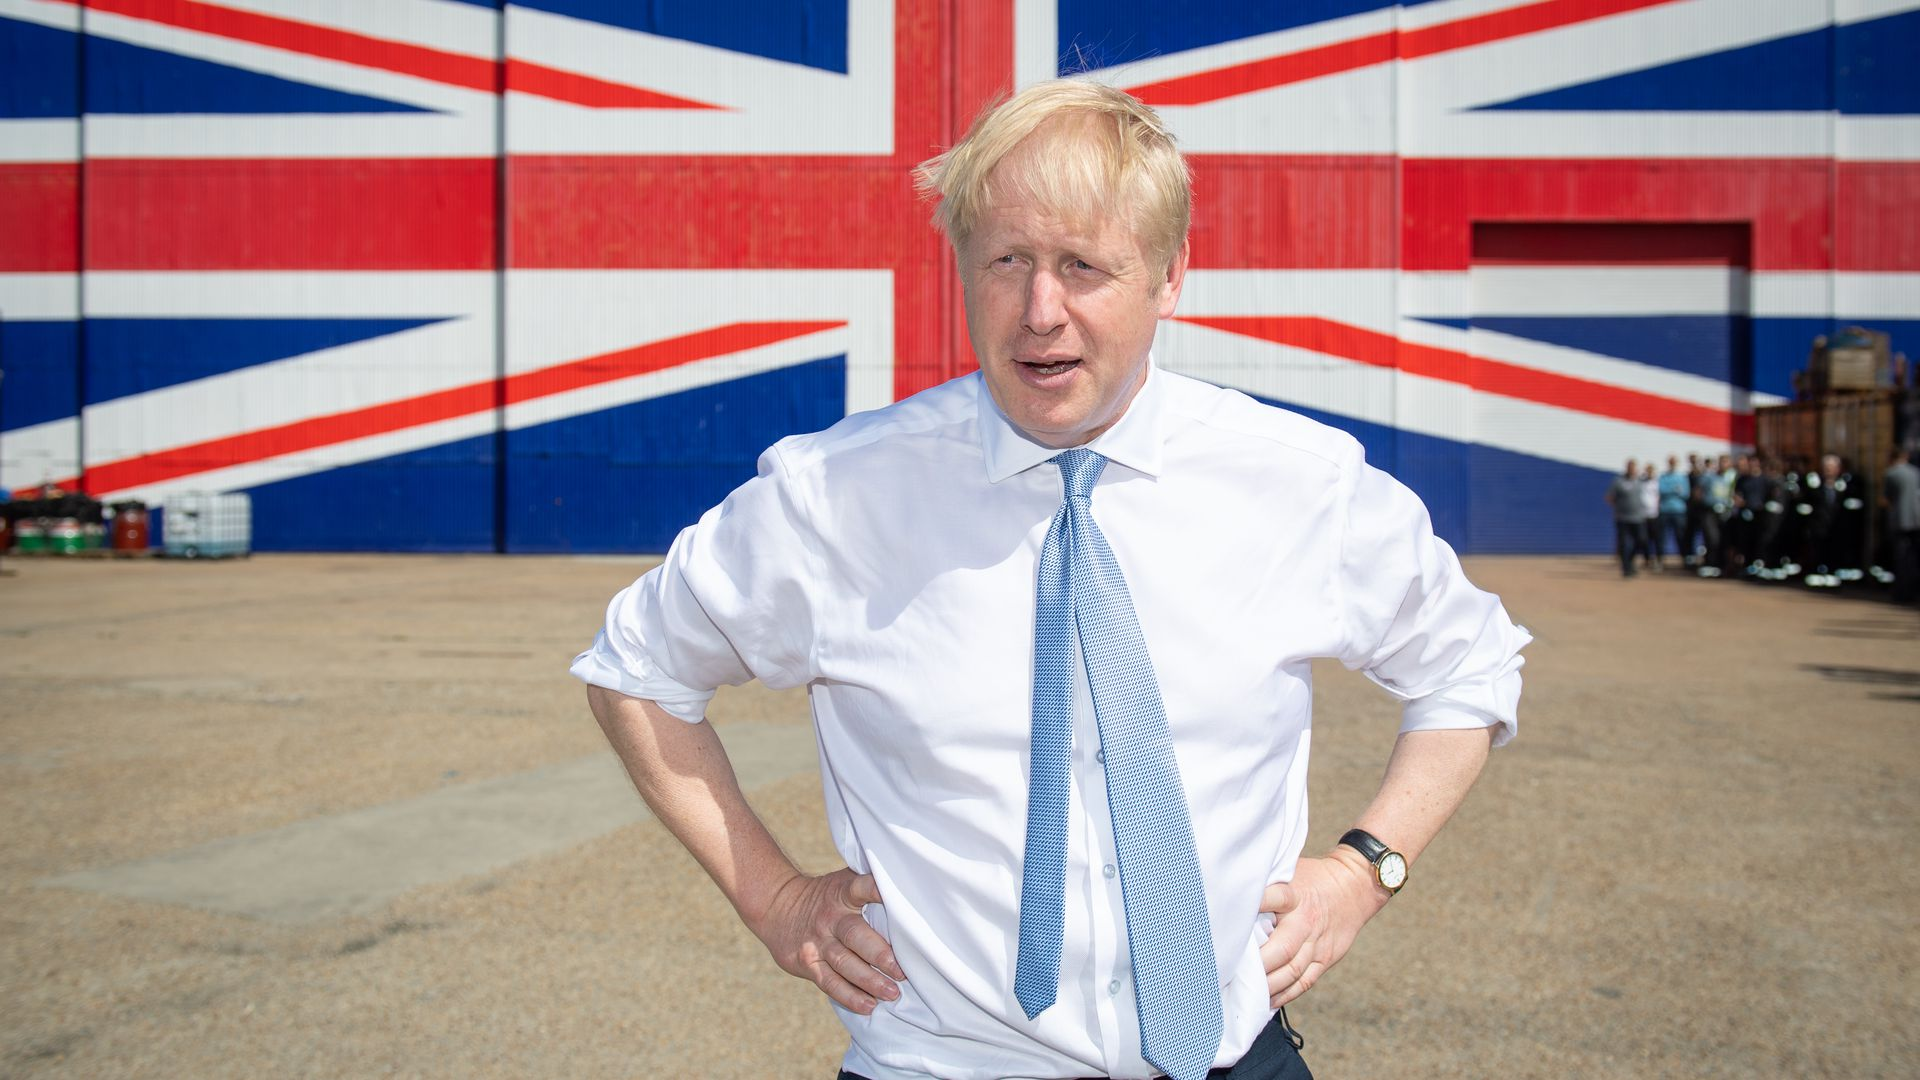 Then-Conservative party leadership contender Boris Johnson  in front of a Union Jack on a wall at the Wight Shipyard Company at Venture Quay during a visit to the Isle of Wight on June 27